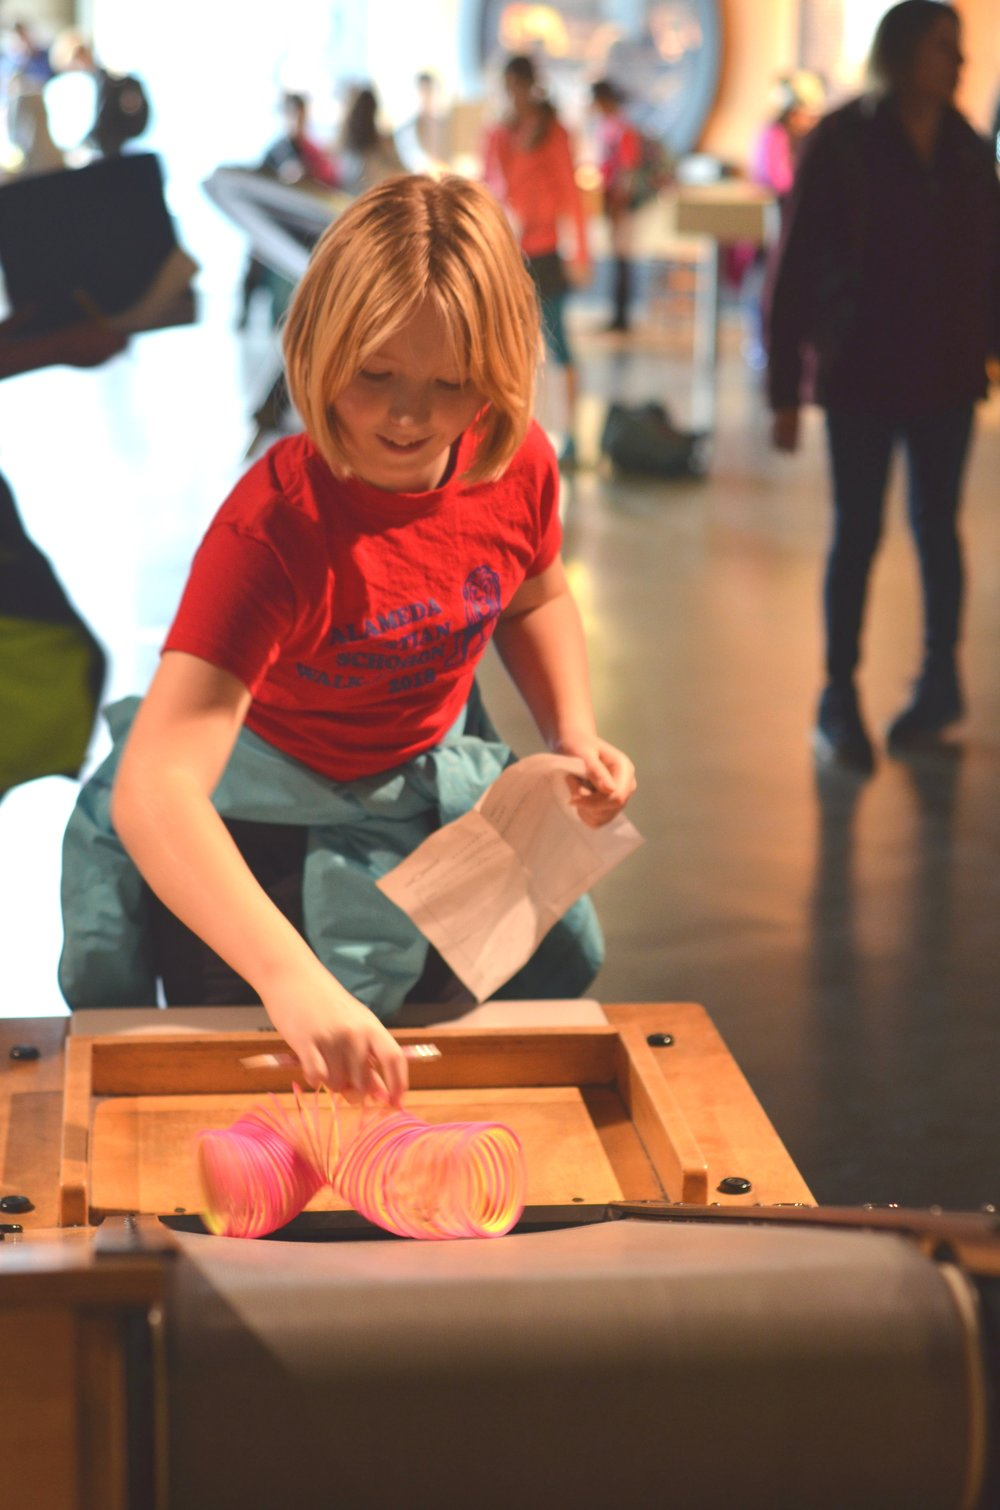 At the Exploratorium, January 2019.